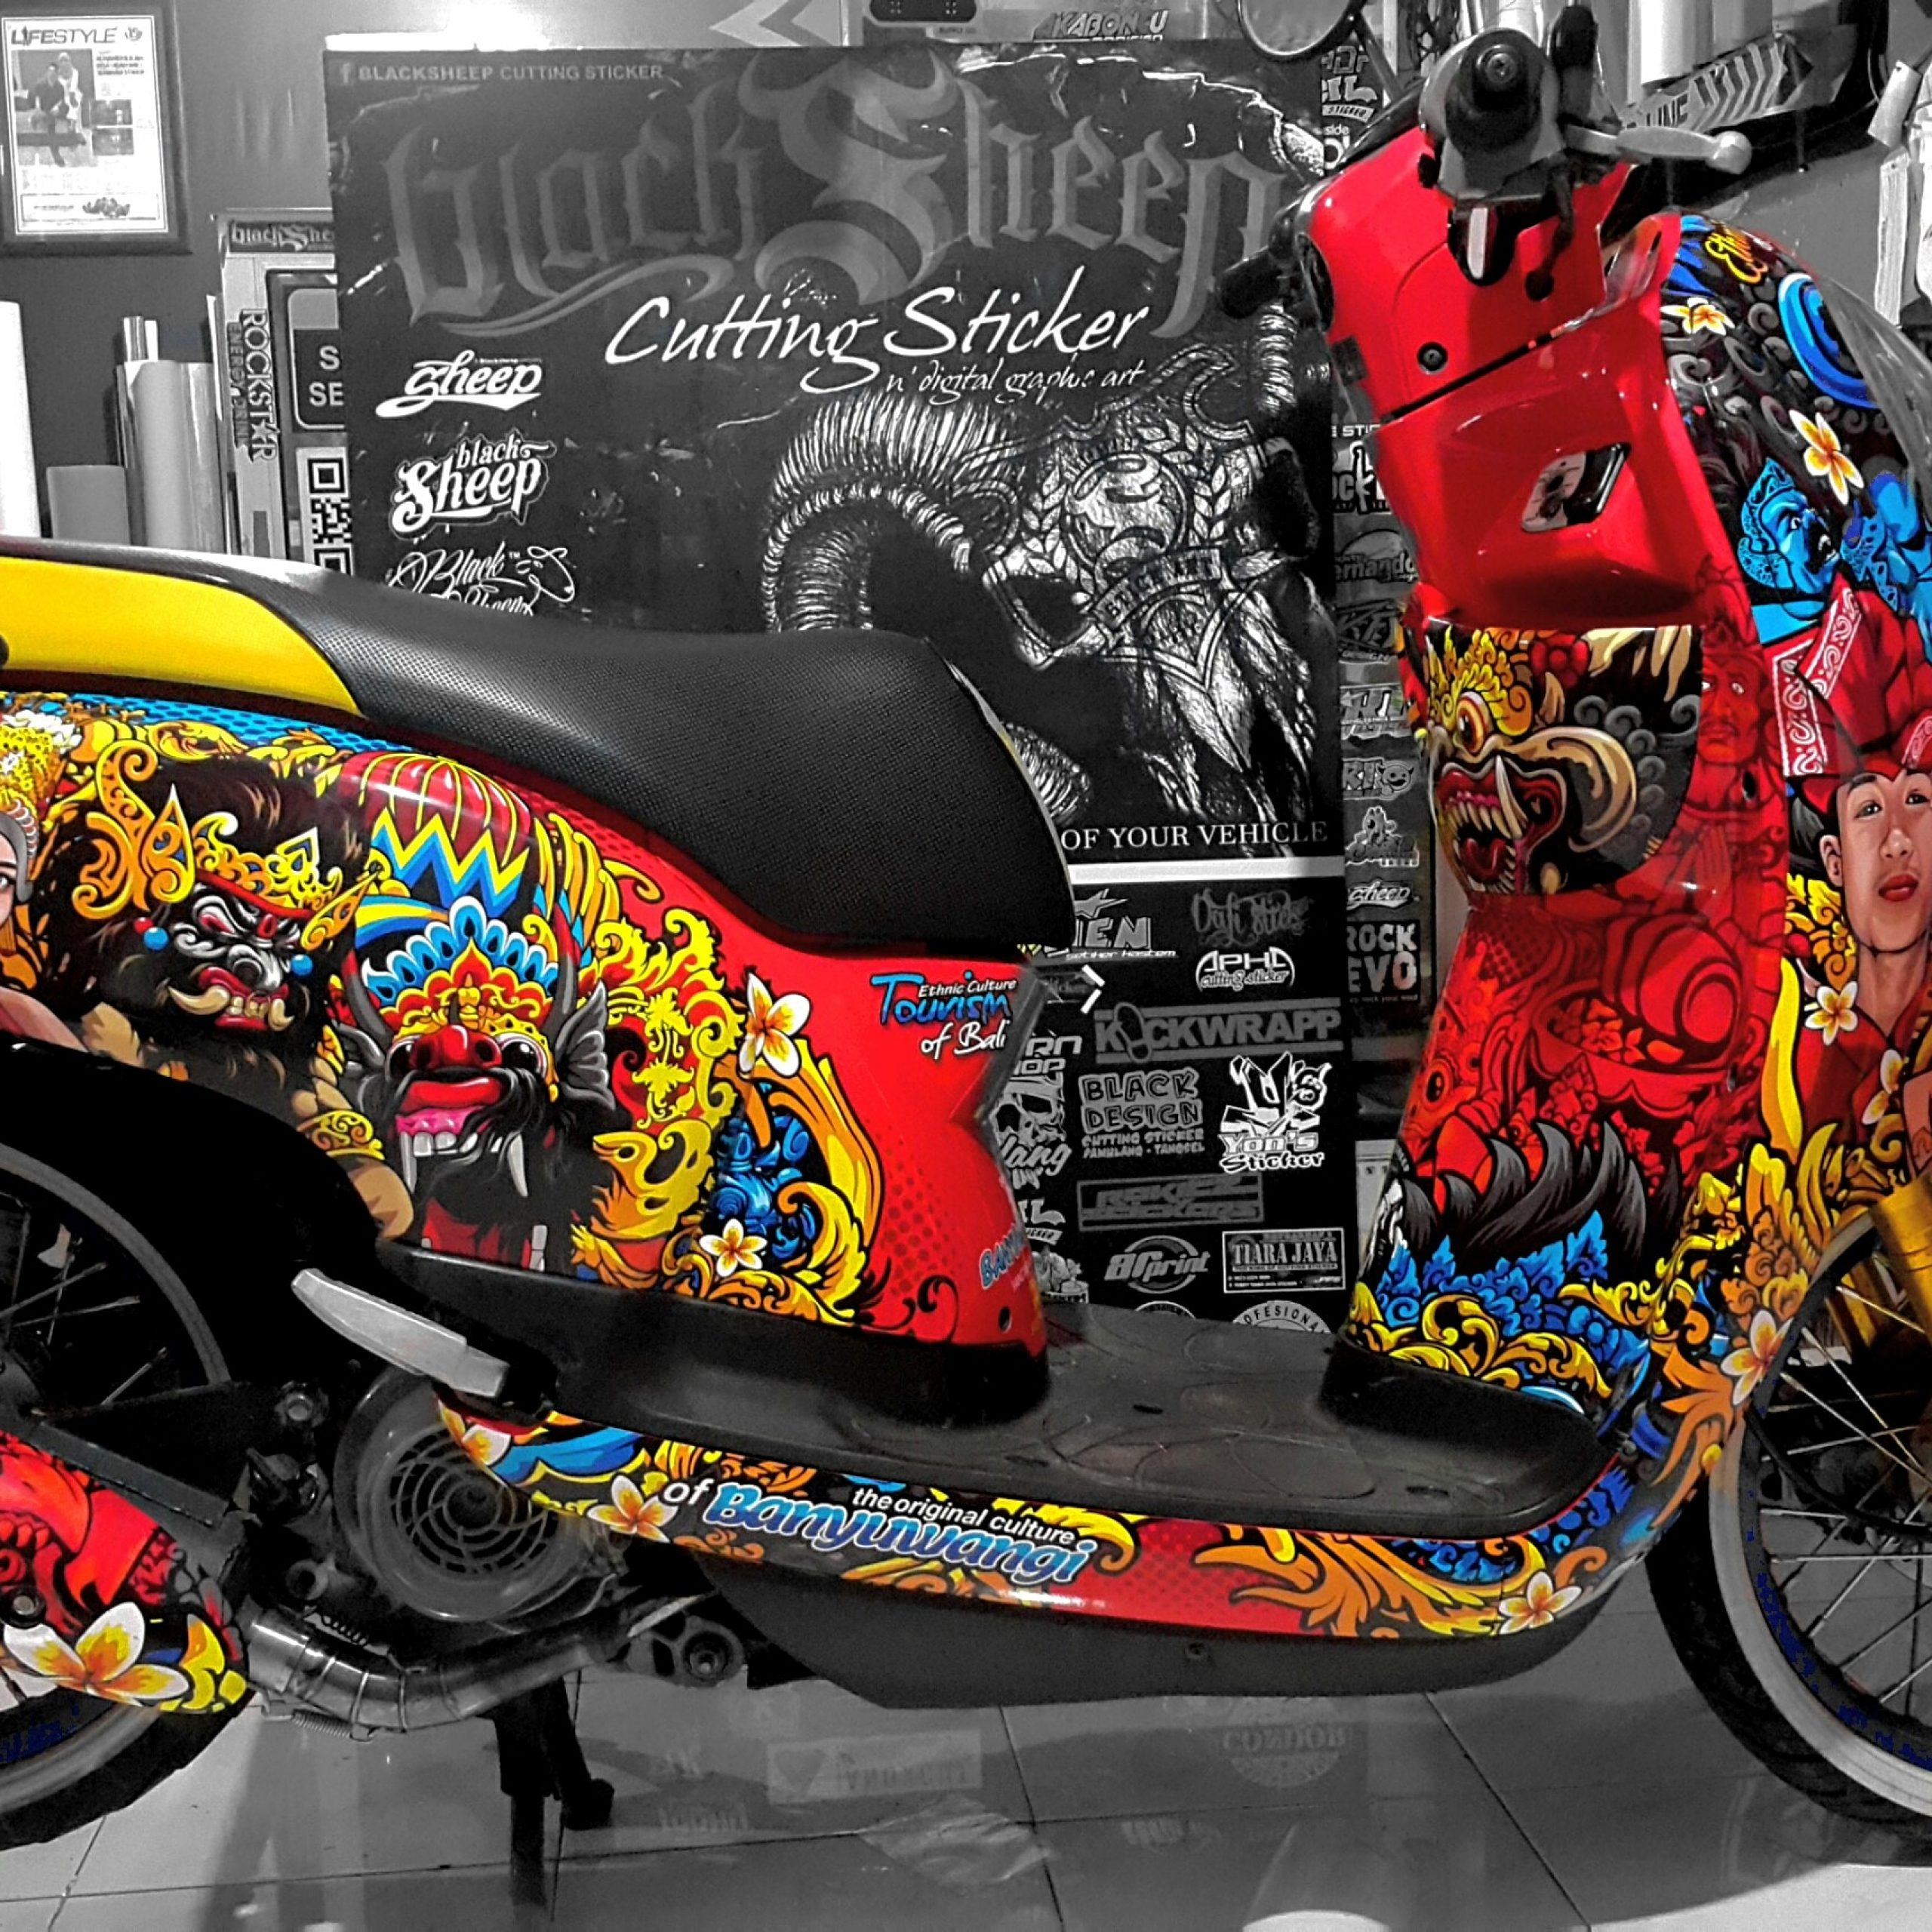 decal sticker scoopy banyuwangi culture